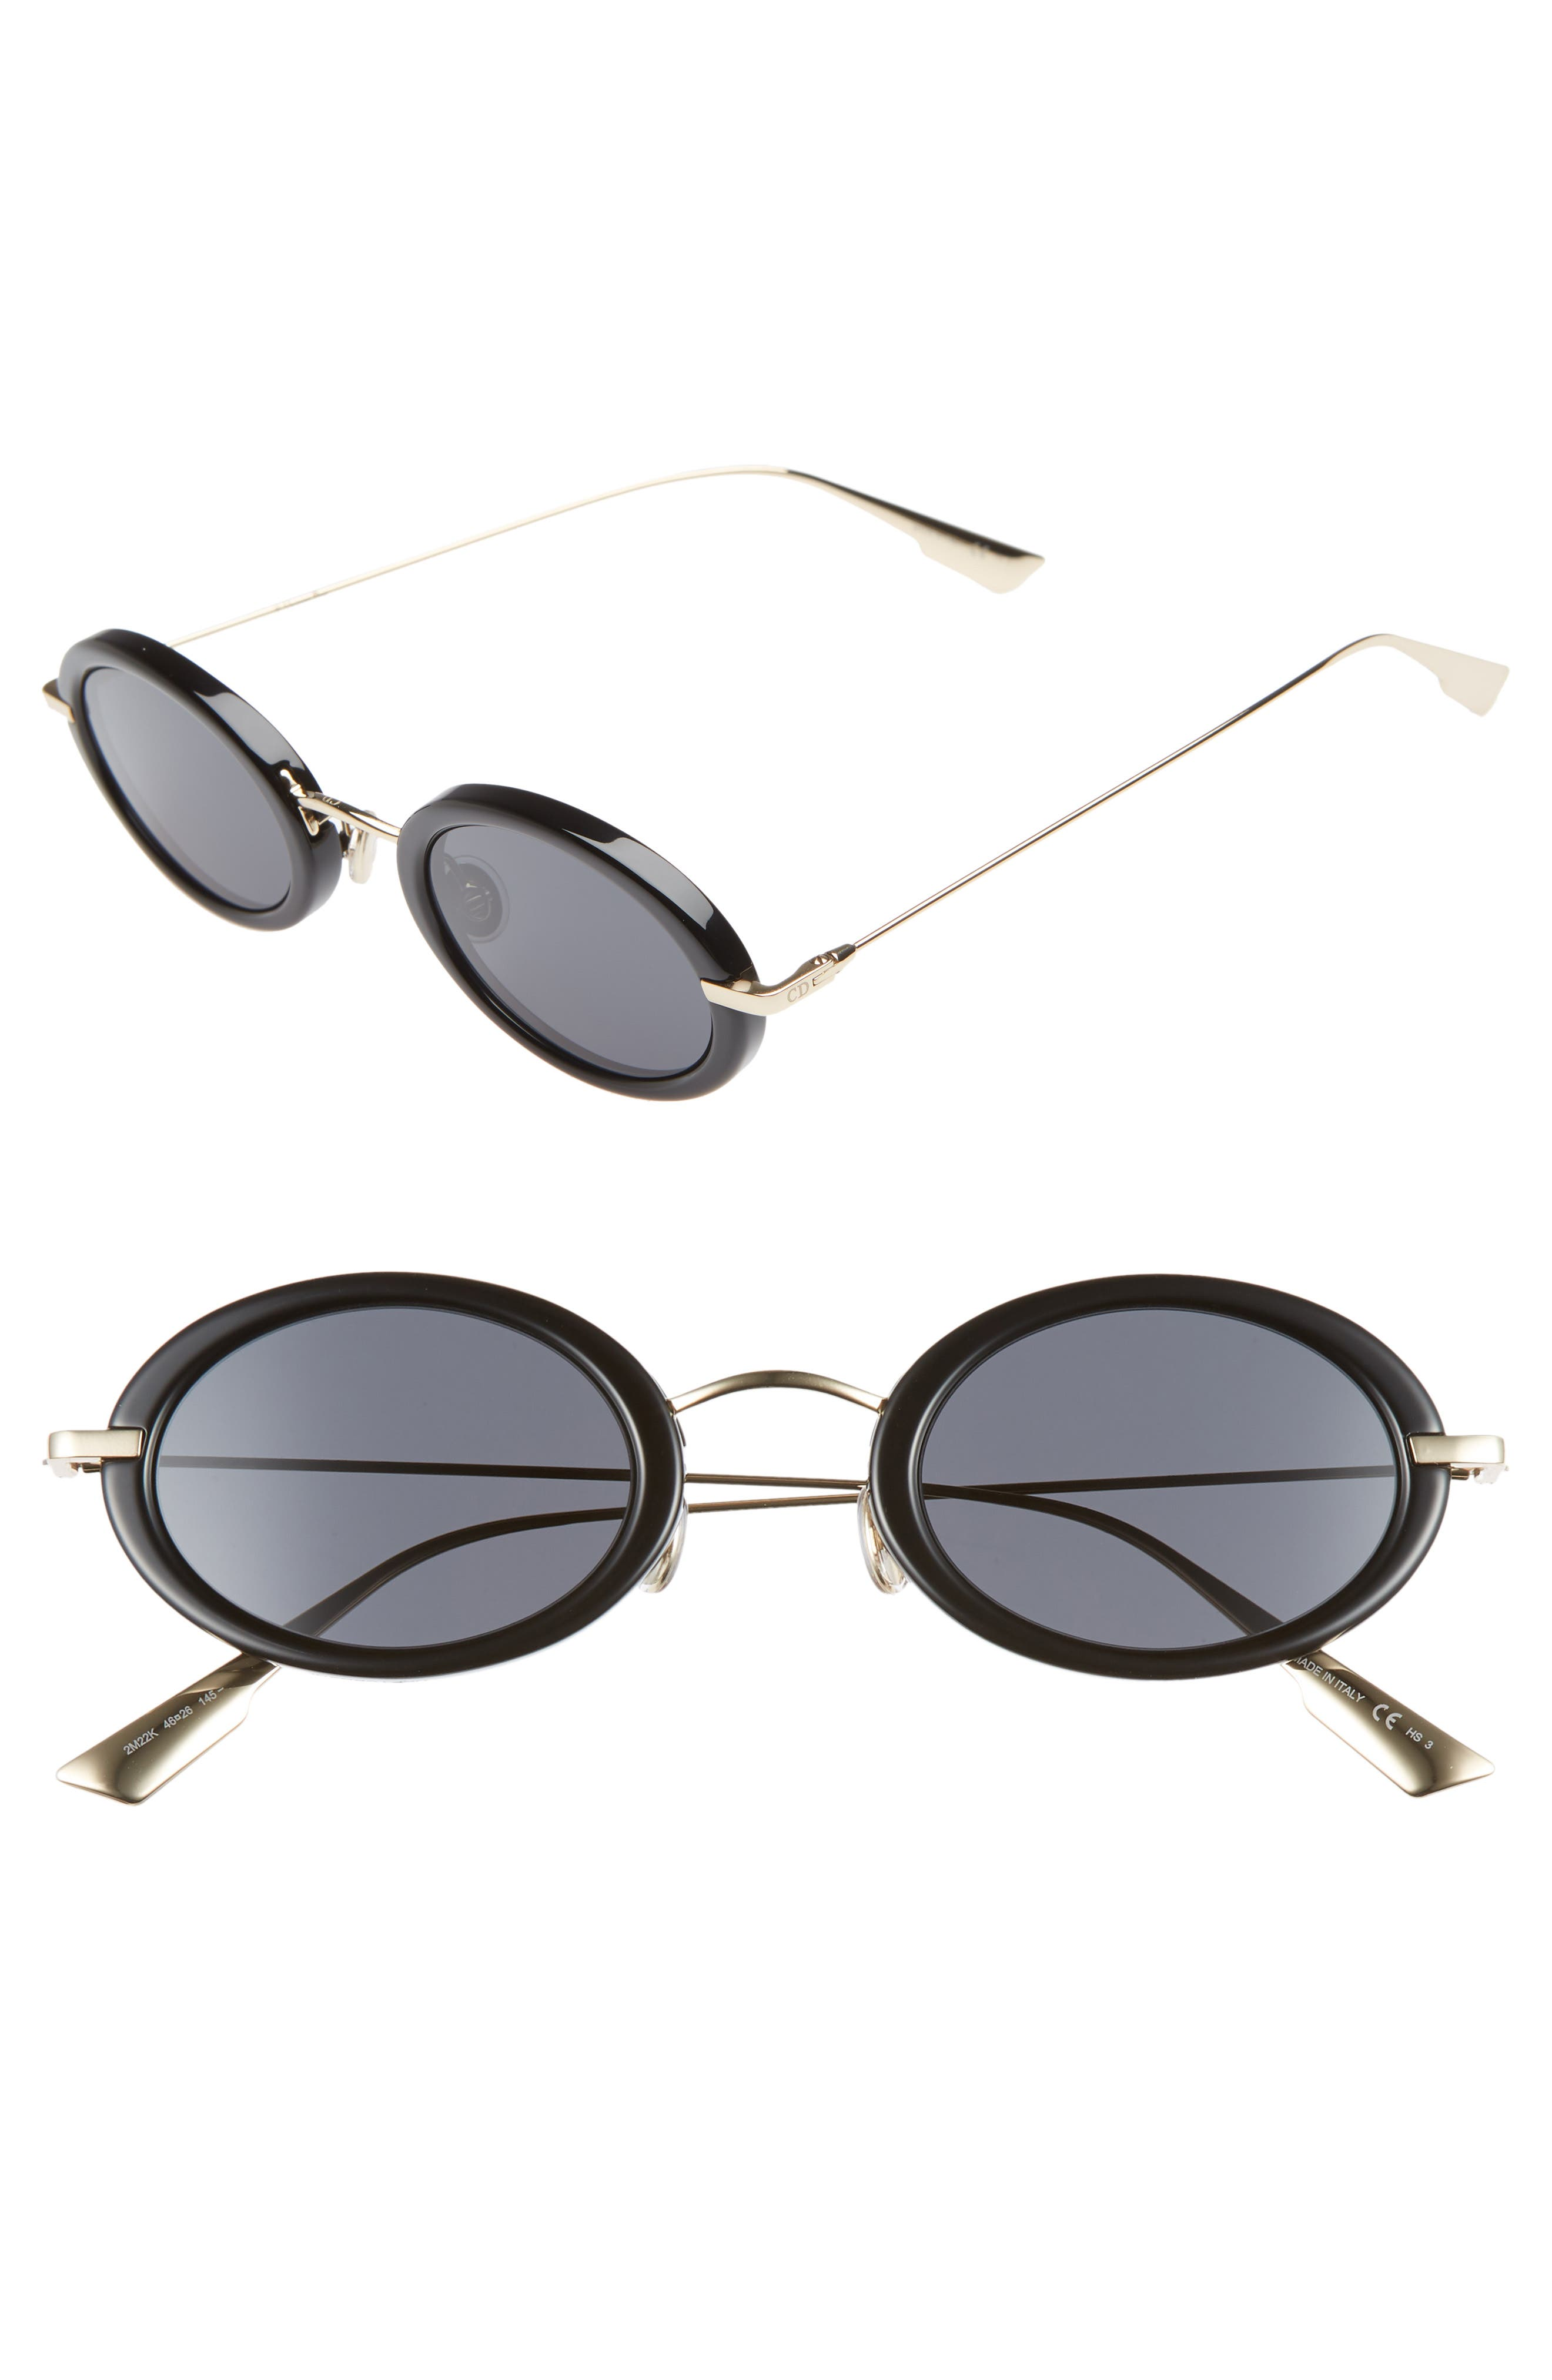 Christian Dior Hypnotic2 46mm Round Sunglasses,                             Main thumbnail 1, color,                             BLACK/ ANTIREFLECTIVE/ GOLD